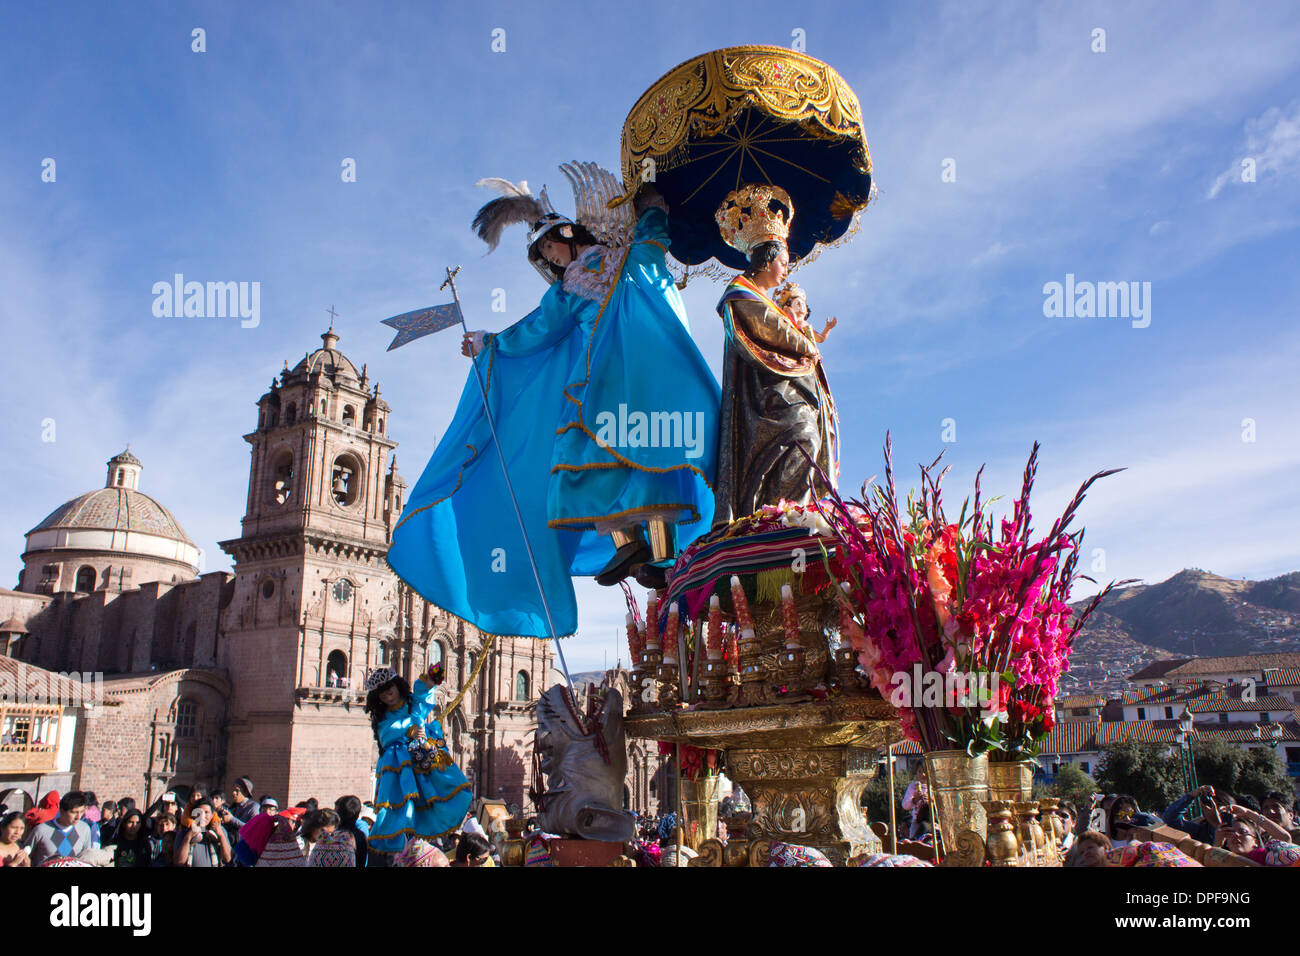 The festivities of Corpus Christi, the most important religious festival in Peru, held in Cuzco, Peru, South America - Stock Image